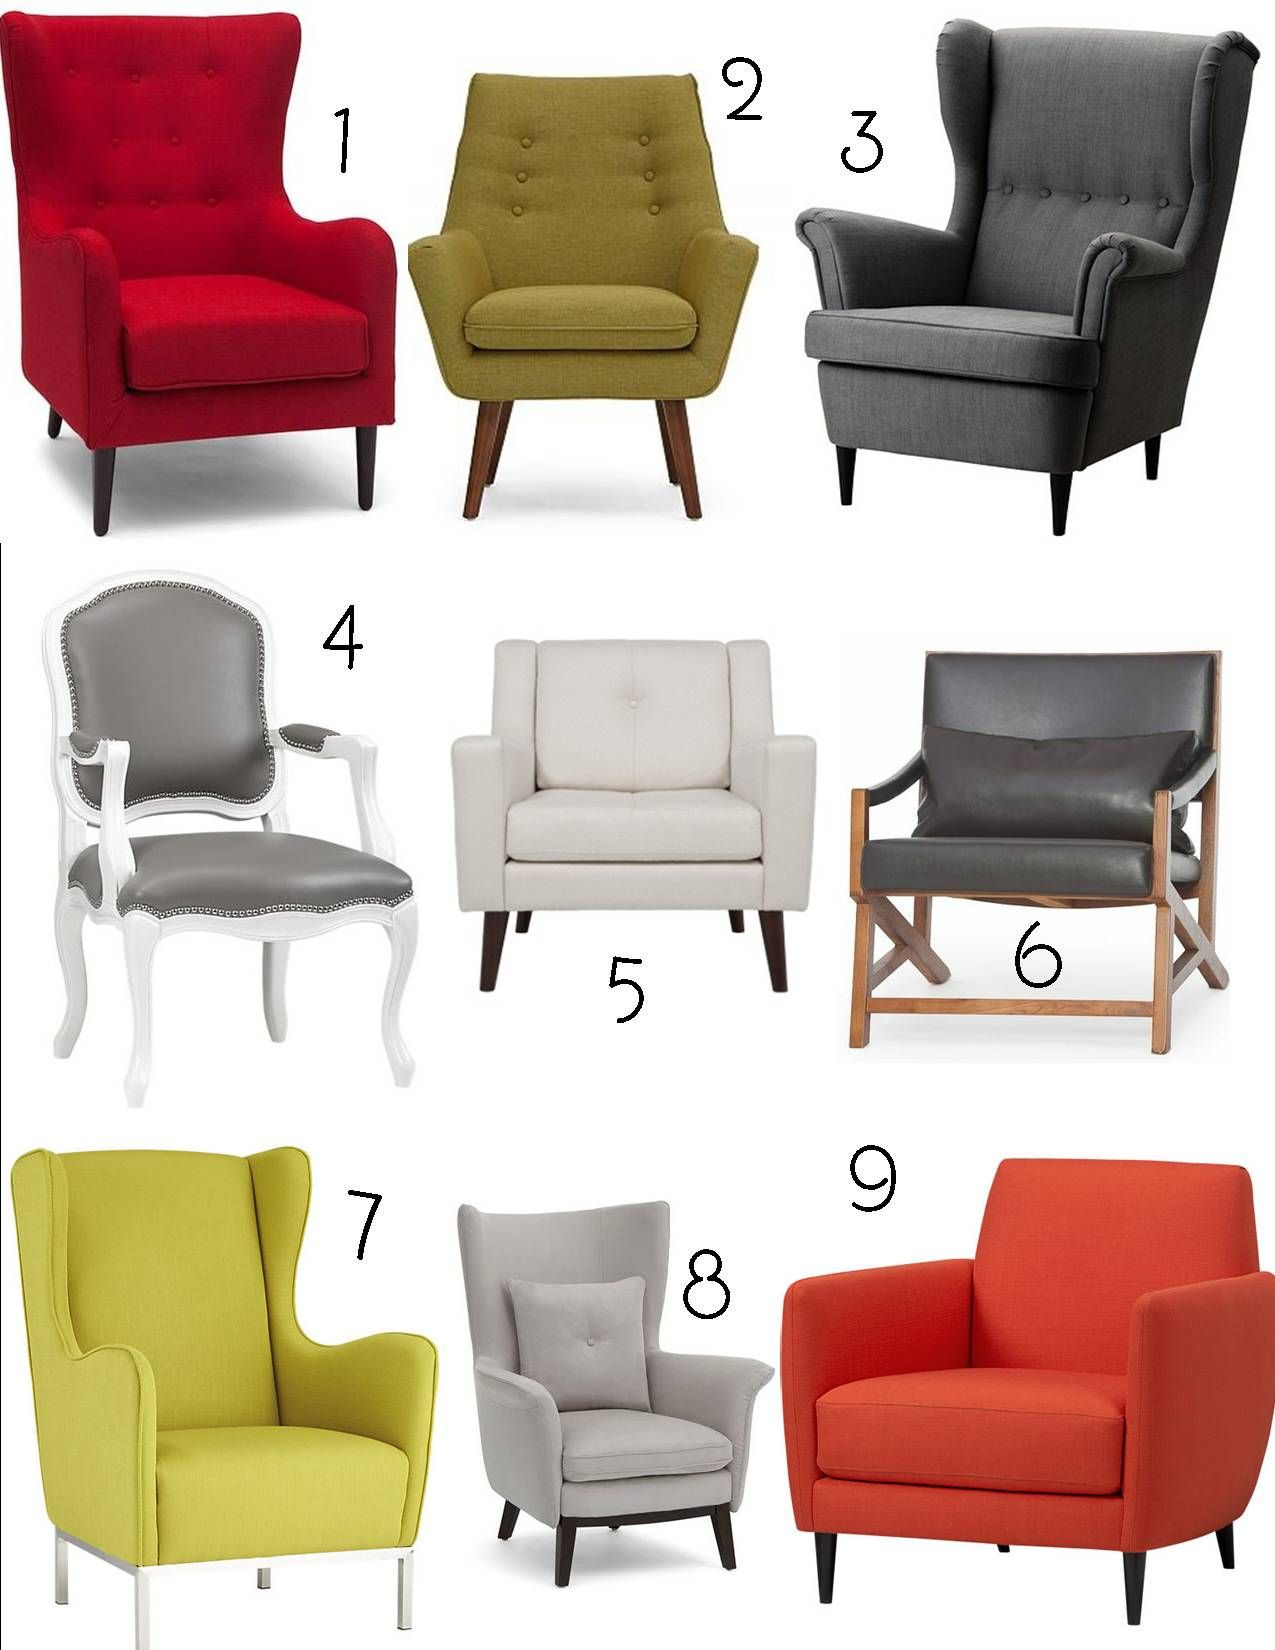 1. Polo Wingback Armchair, Structube; 2. Claire Armchair, Structube; 3.  Gray ArmchairWingback ArmchairArmchairsIkea ...